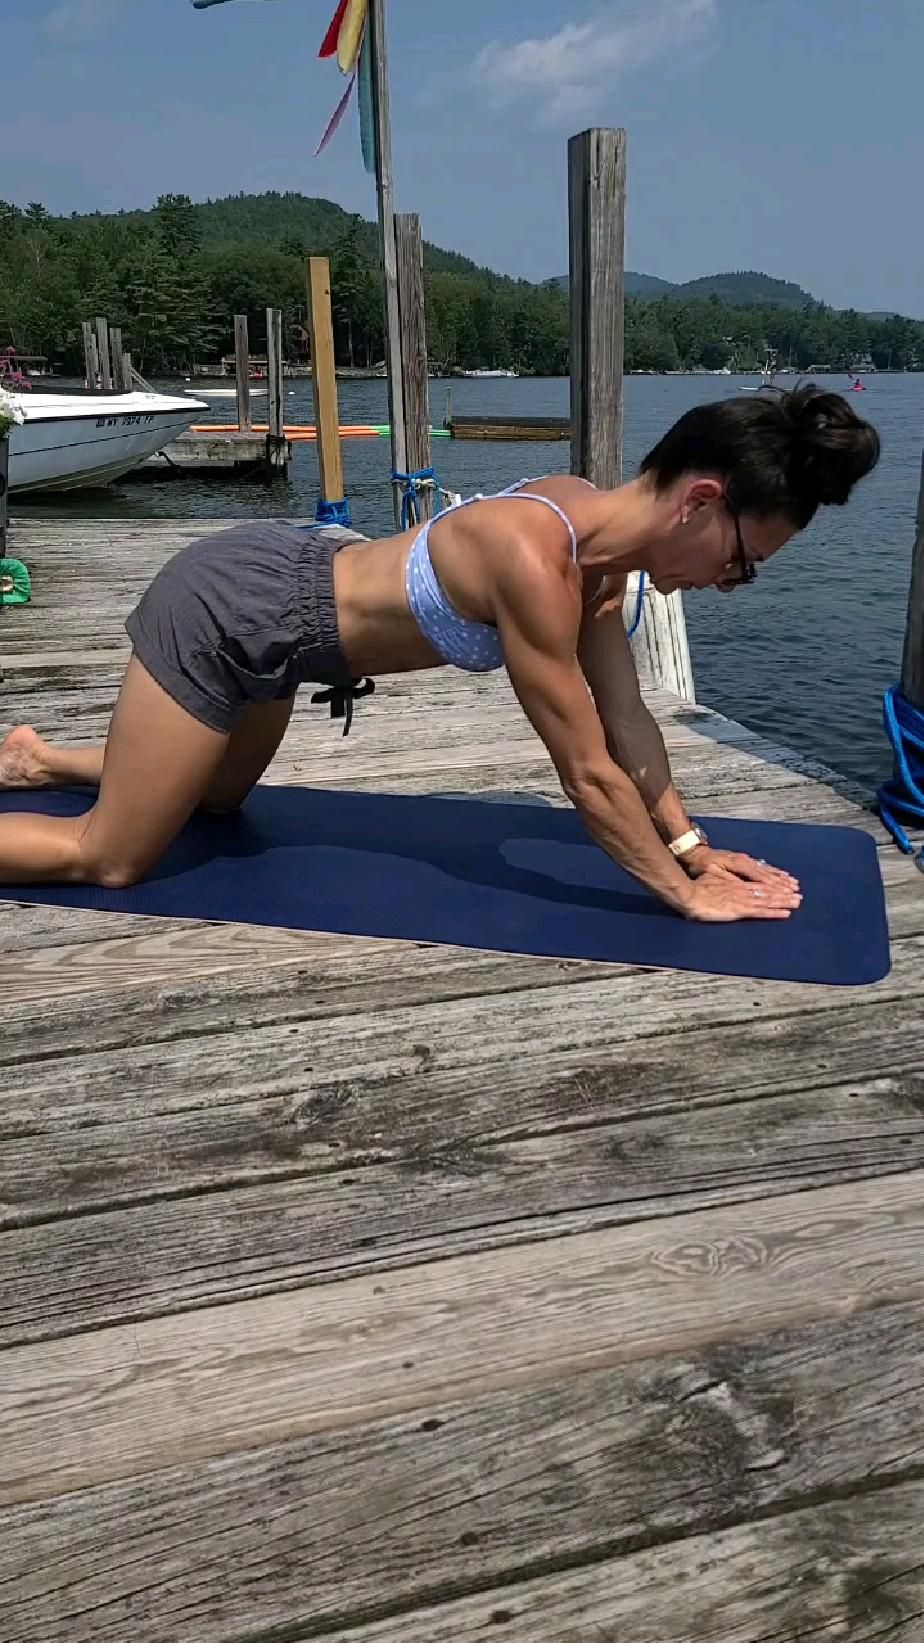 Full body exercises that require no equipment and you can perfom just about anywhere